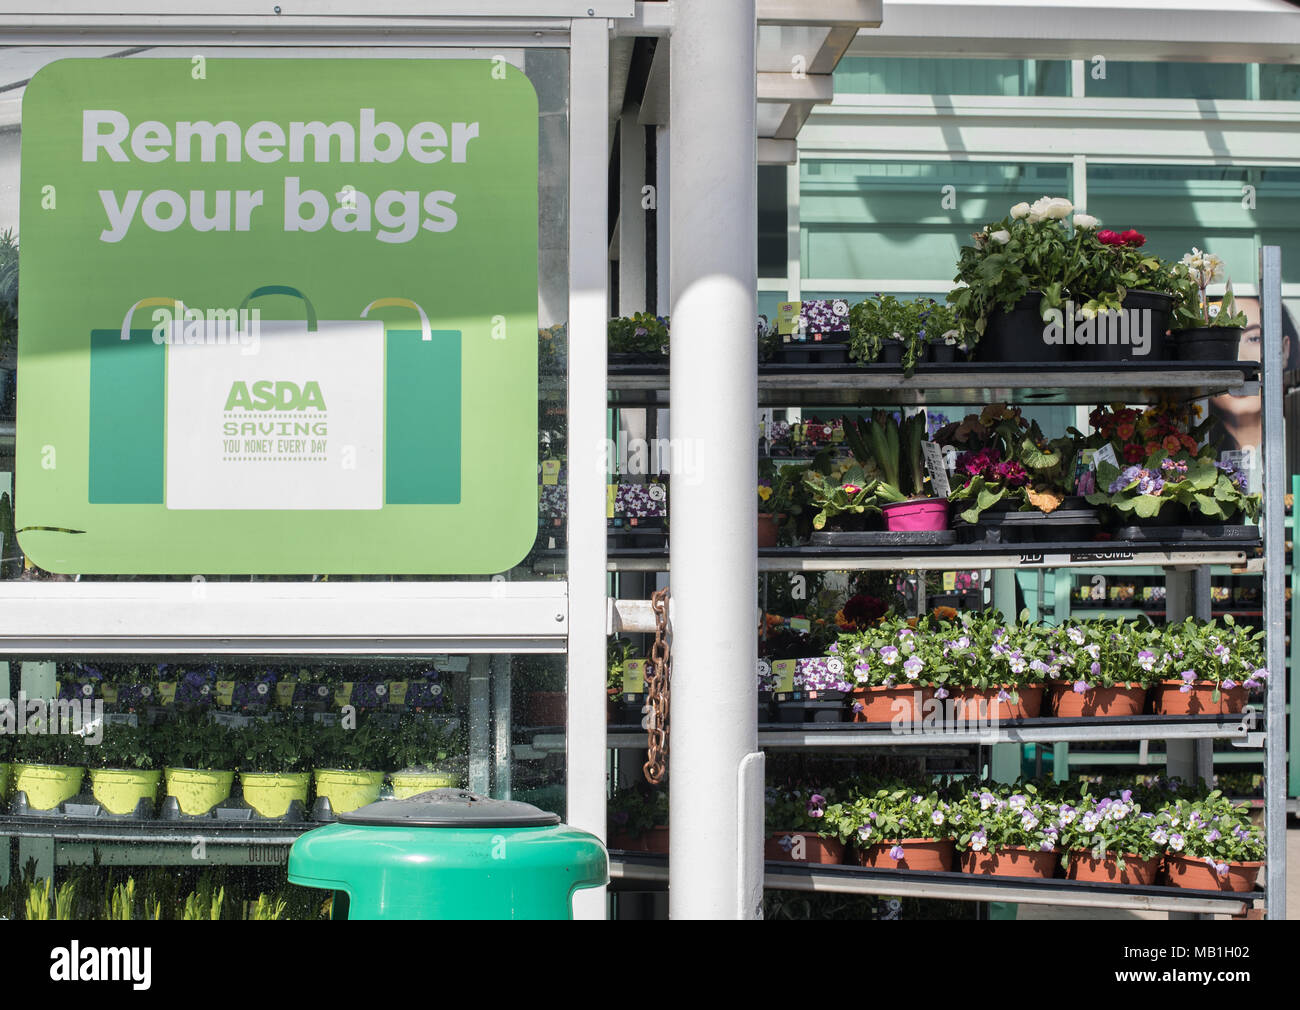 Asda Shopping Bags Stock Photos & Asda Shopping Bags Stock